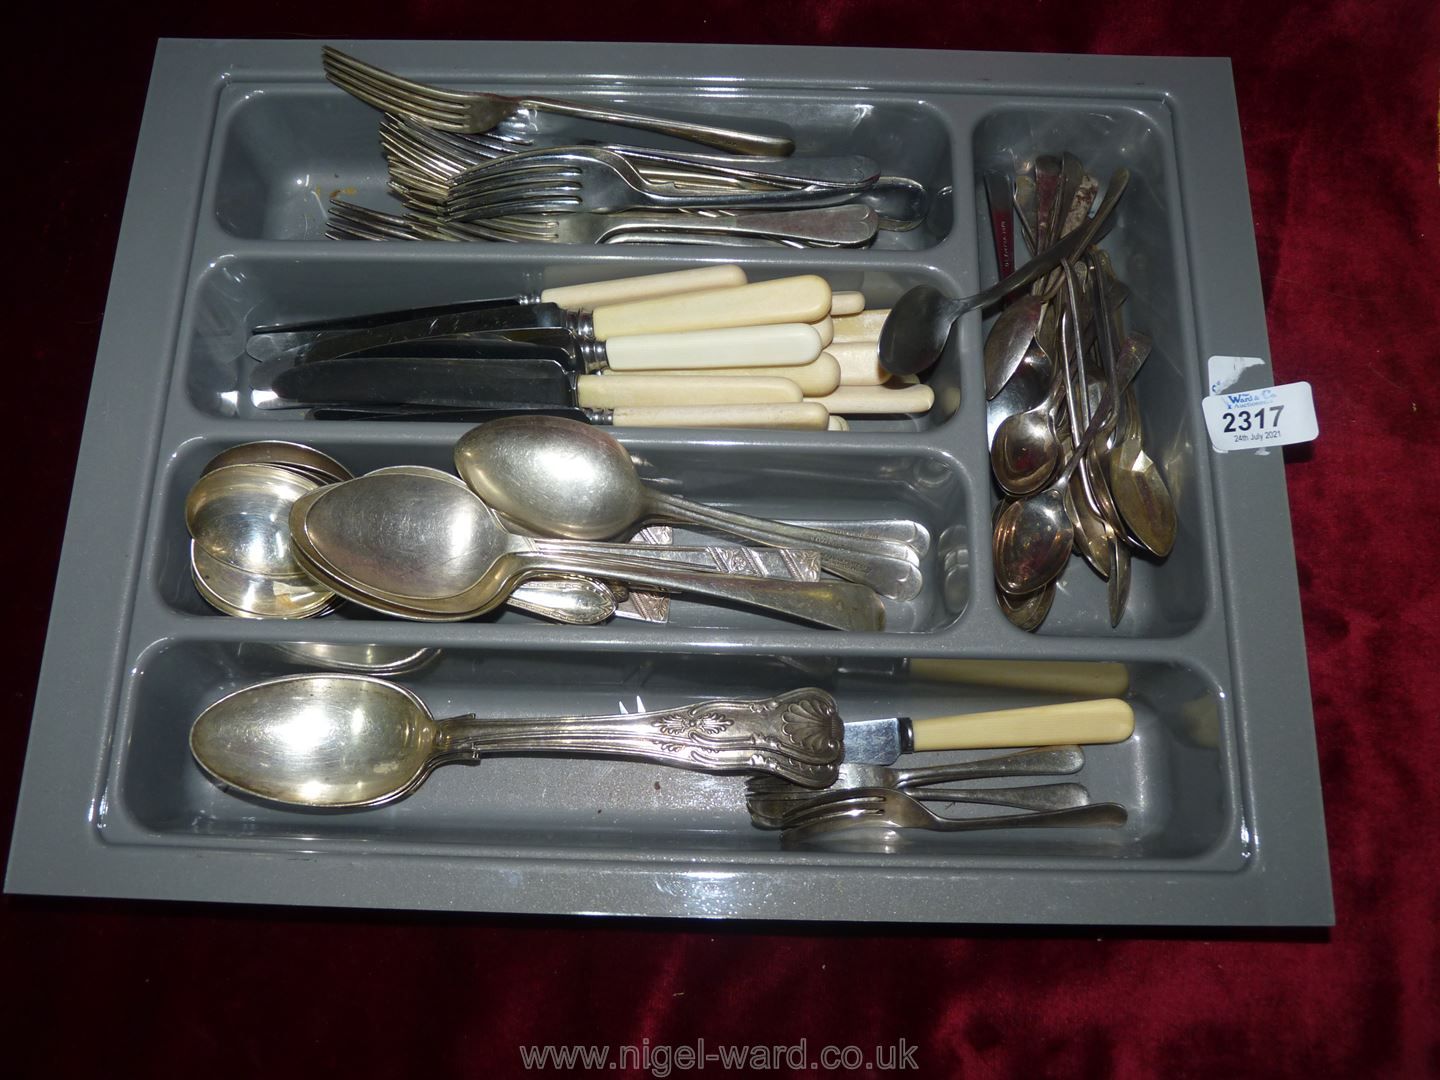 A cutlery tray and cutlery including grapefruit spoons, cake forks,